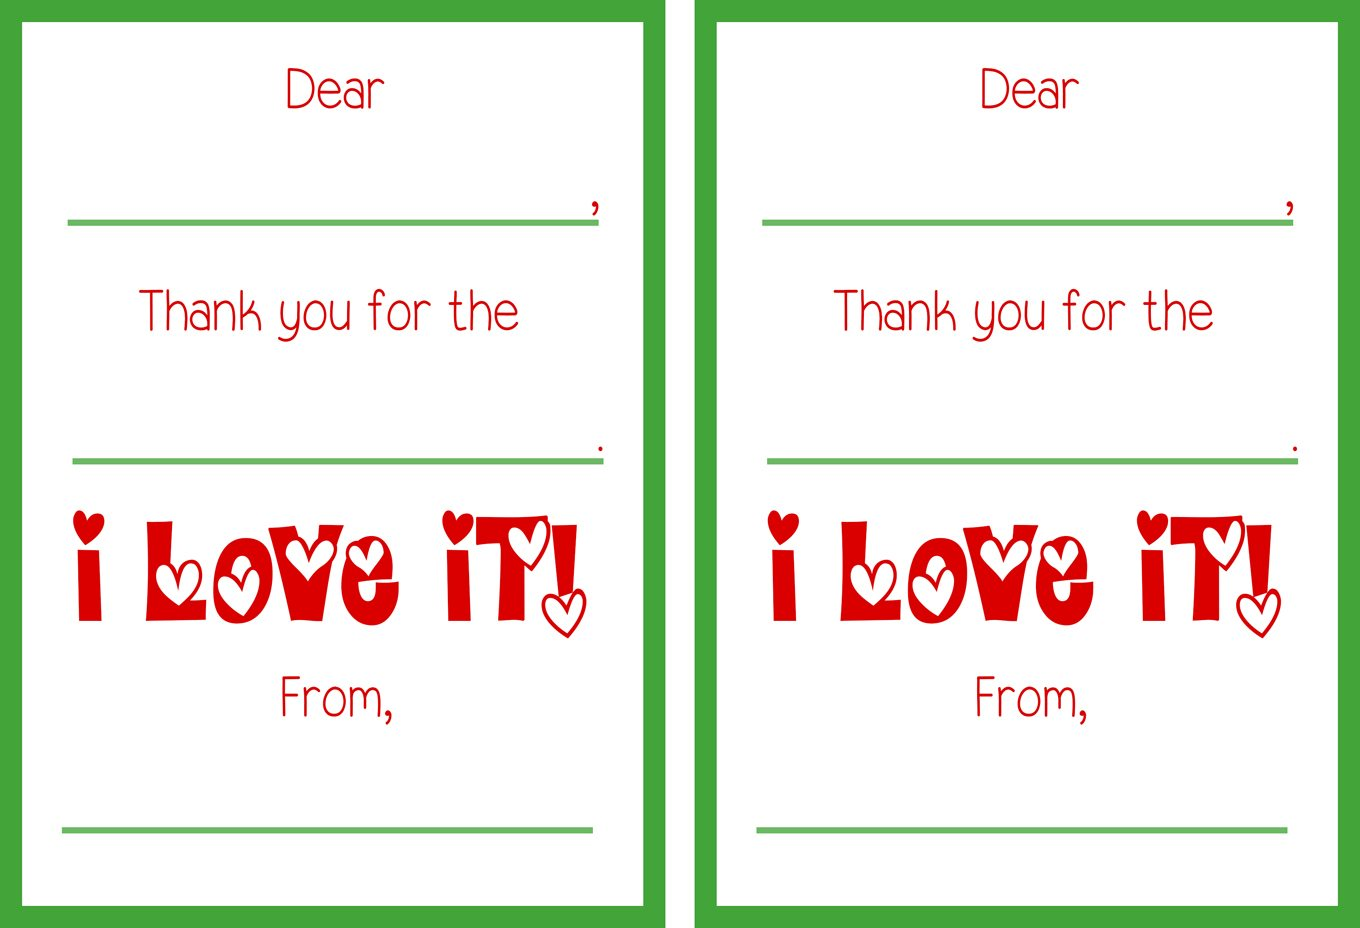 photo regarding Christmas Thank You Cards Printable Free named No cost Printable Xmas Thank On your own Playing cards